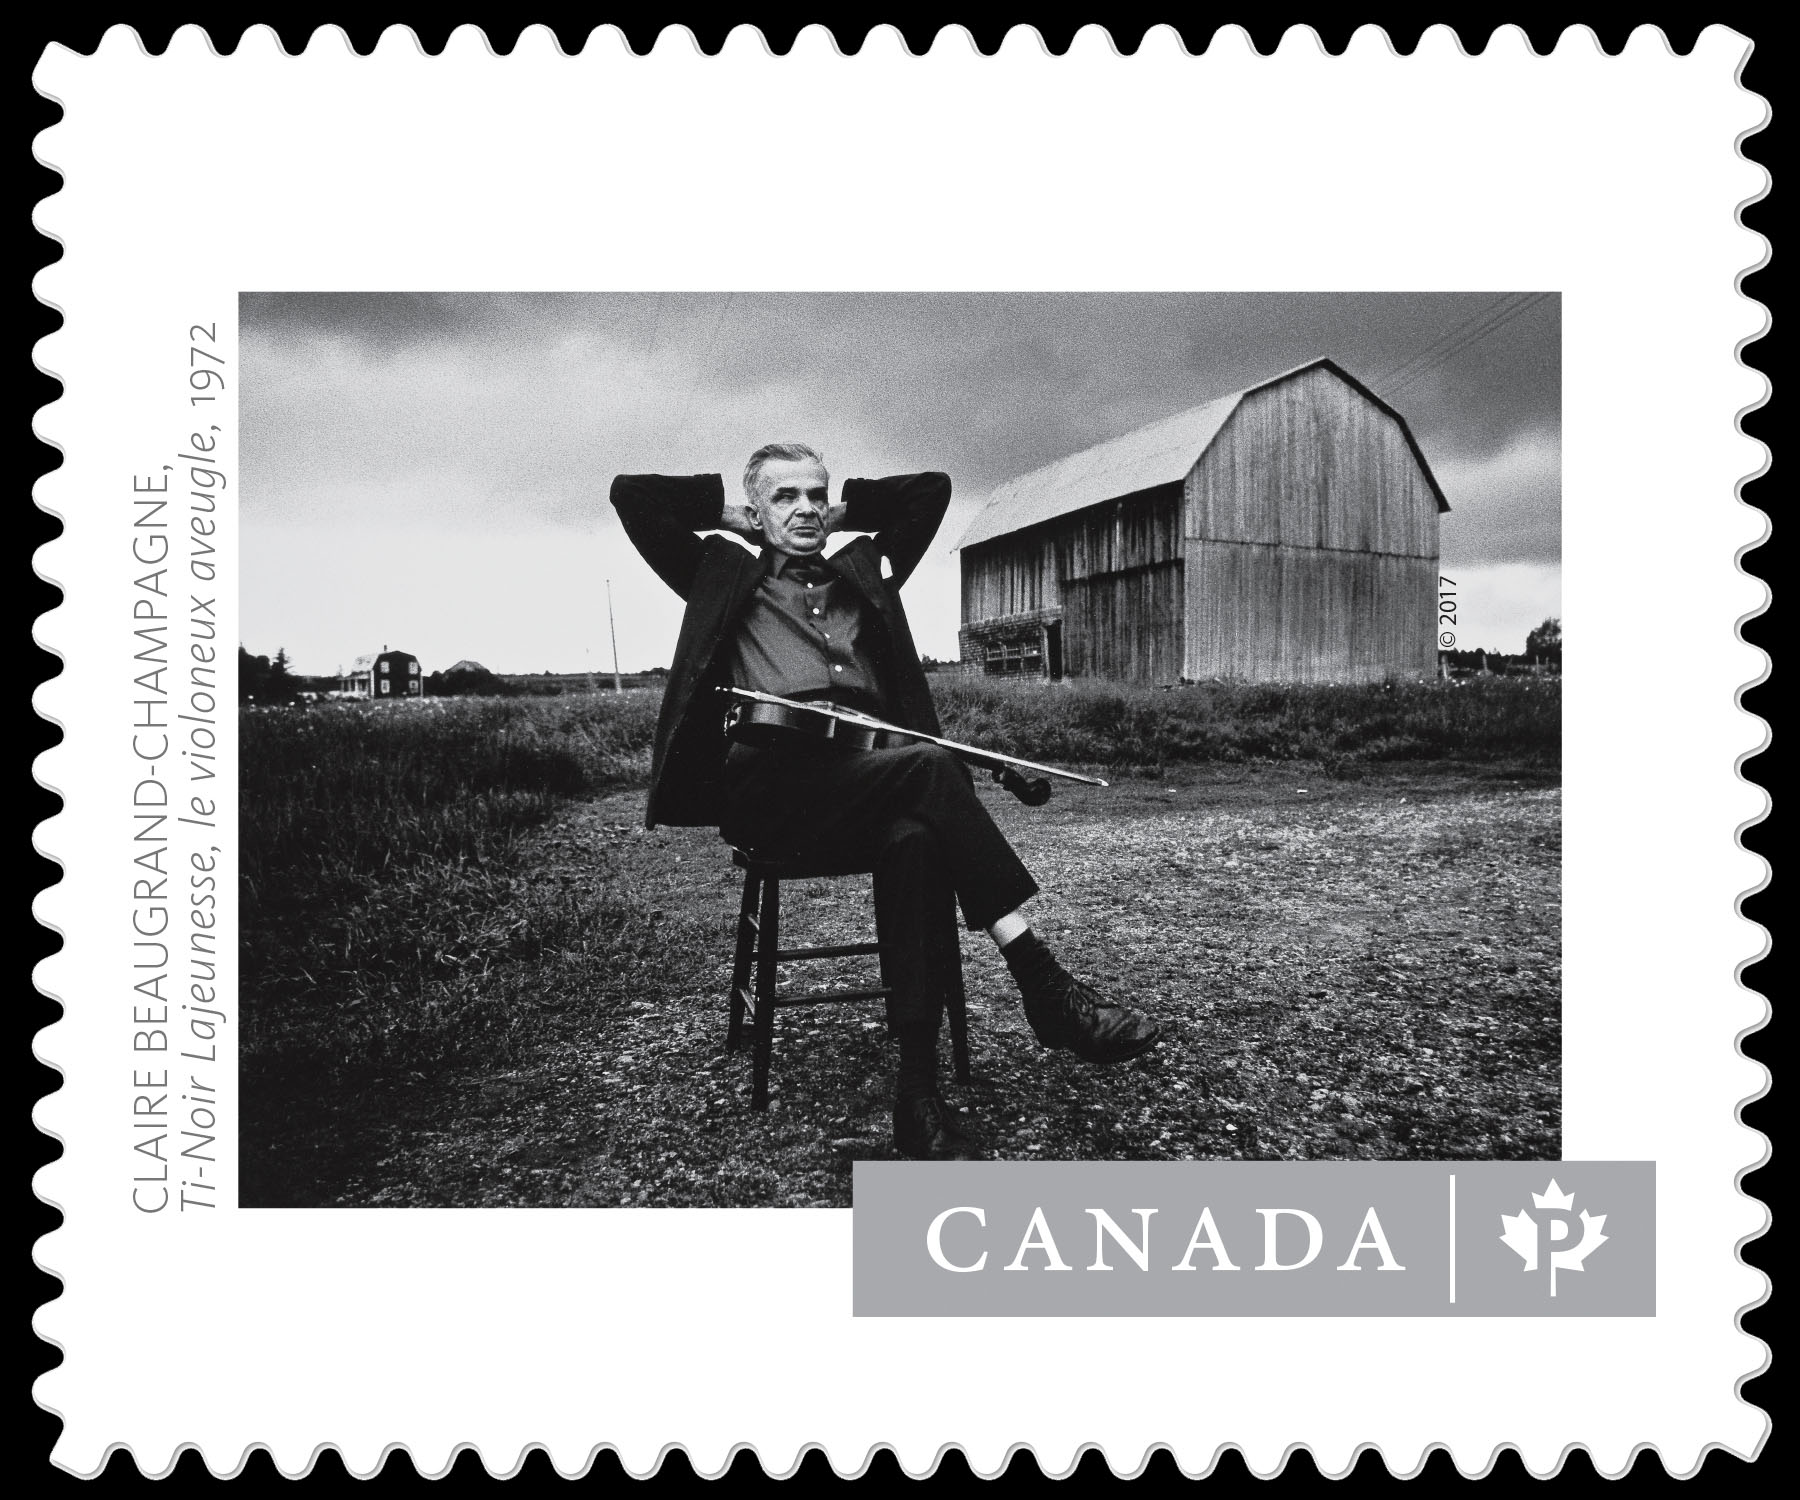 """Ti-Noir Lajeunesse, The Blind Violinist"" - Claire Beaugrand-Champagne Canada Postage Stamp 